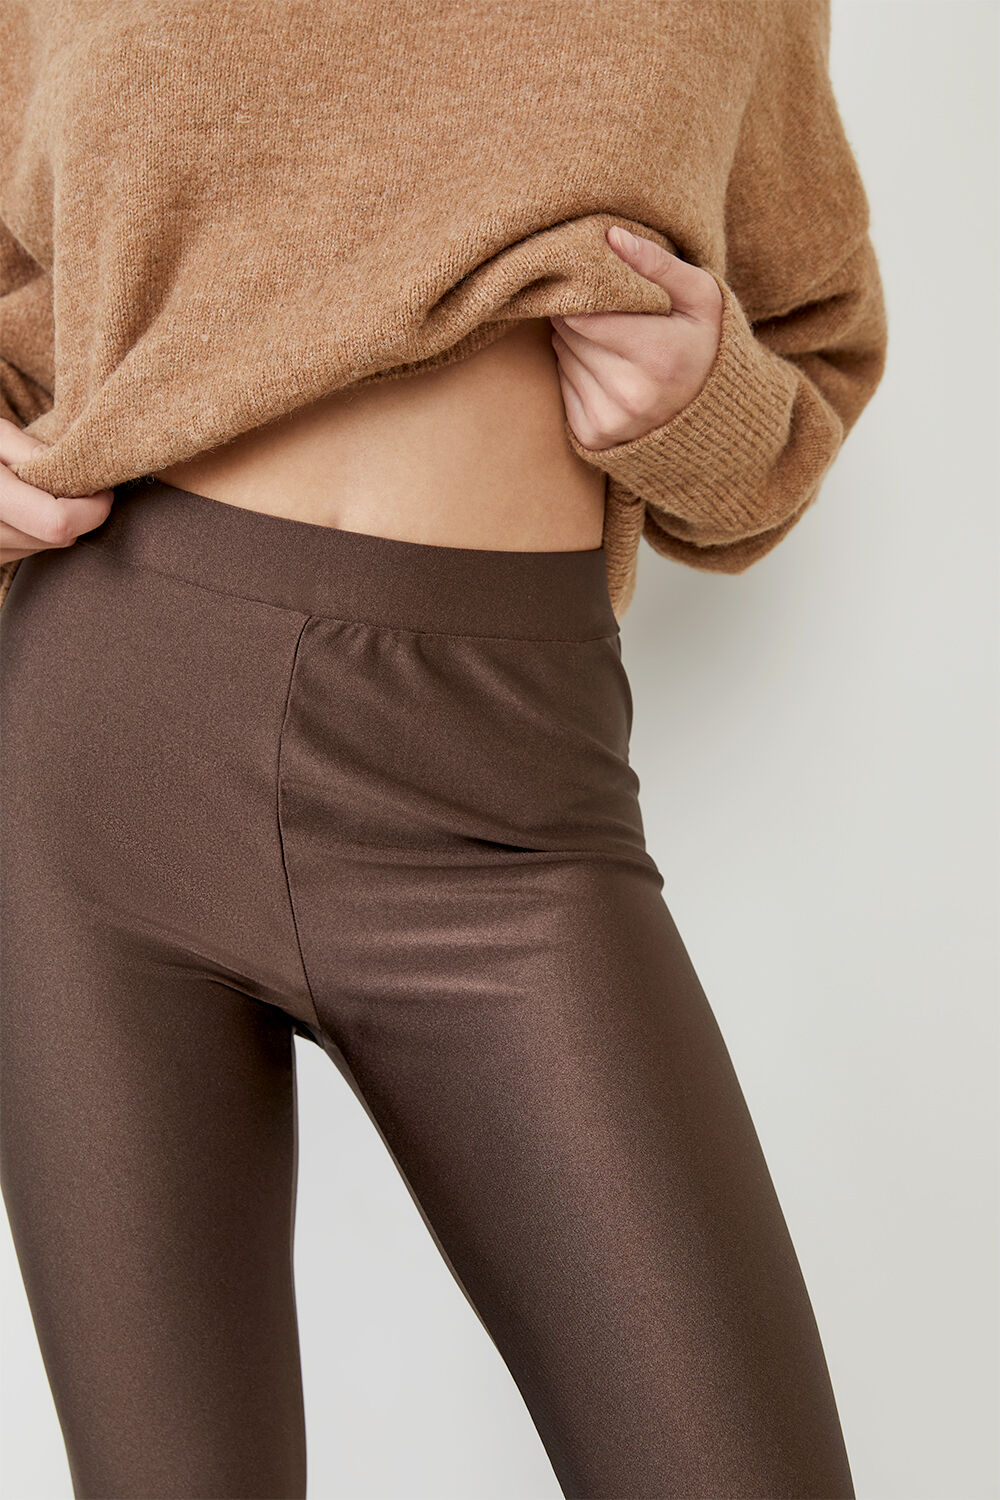 ROLLER LEGGING in colour CHOCOLATE BROWN